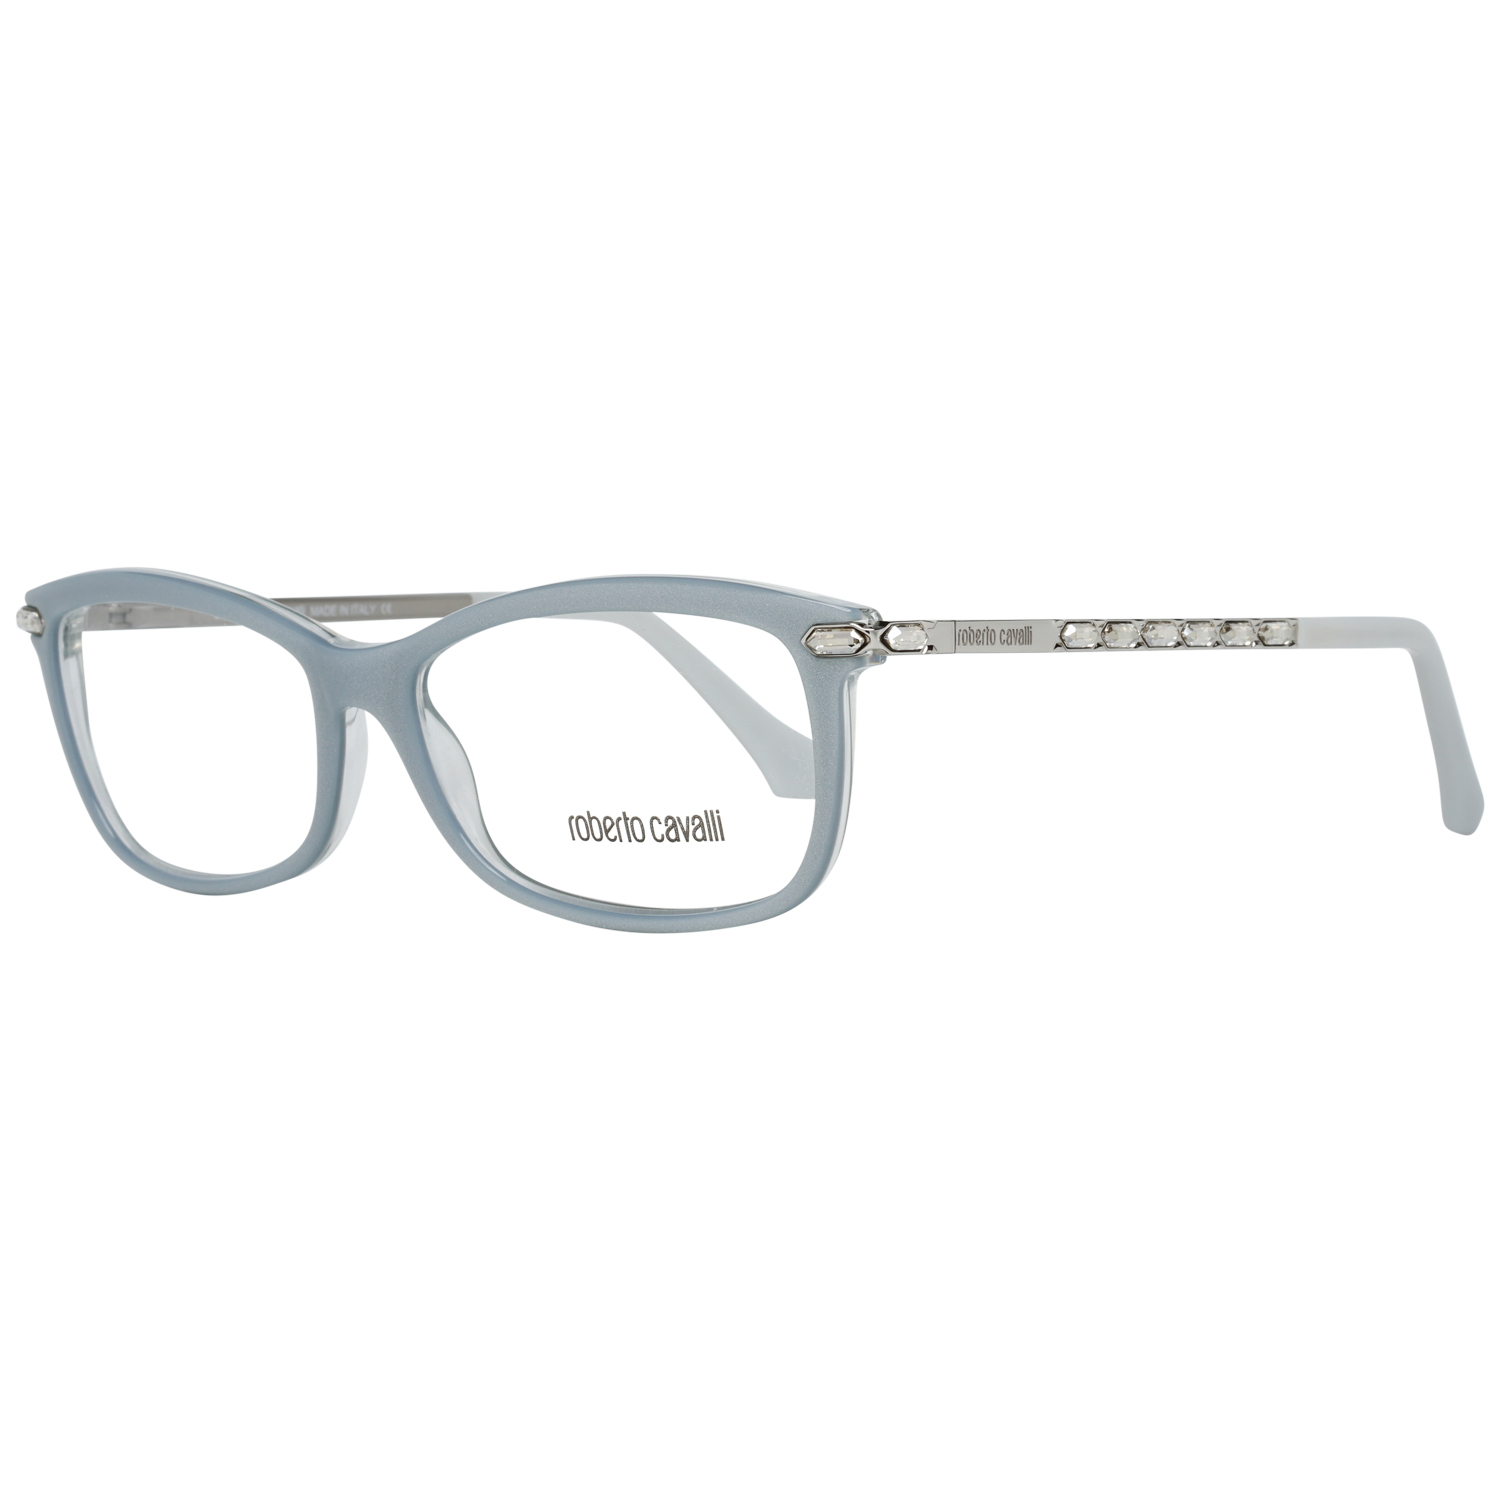 Roberto Cavalli Optical Frame RC0870 092 54 Women Grey